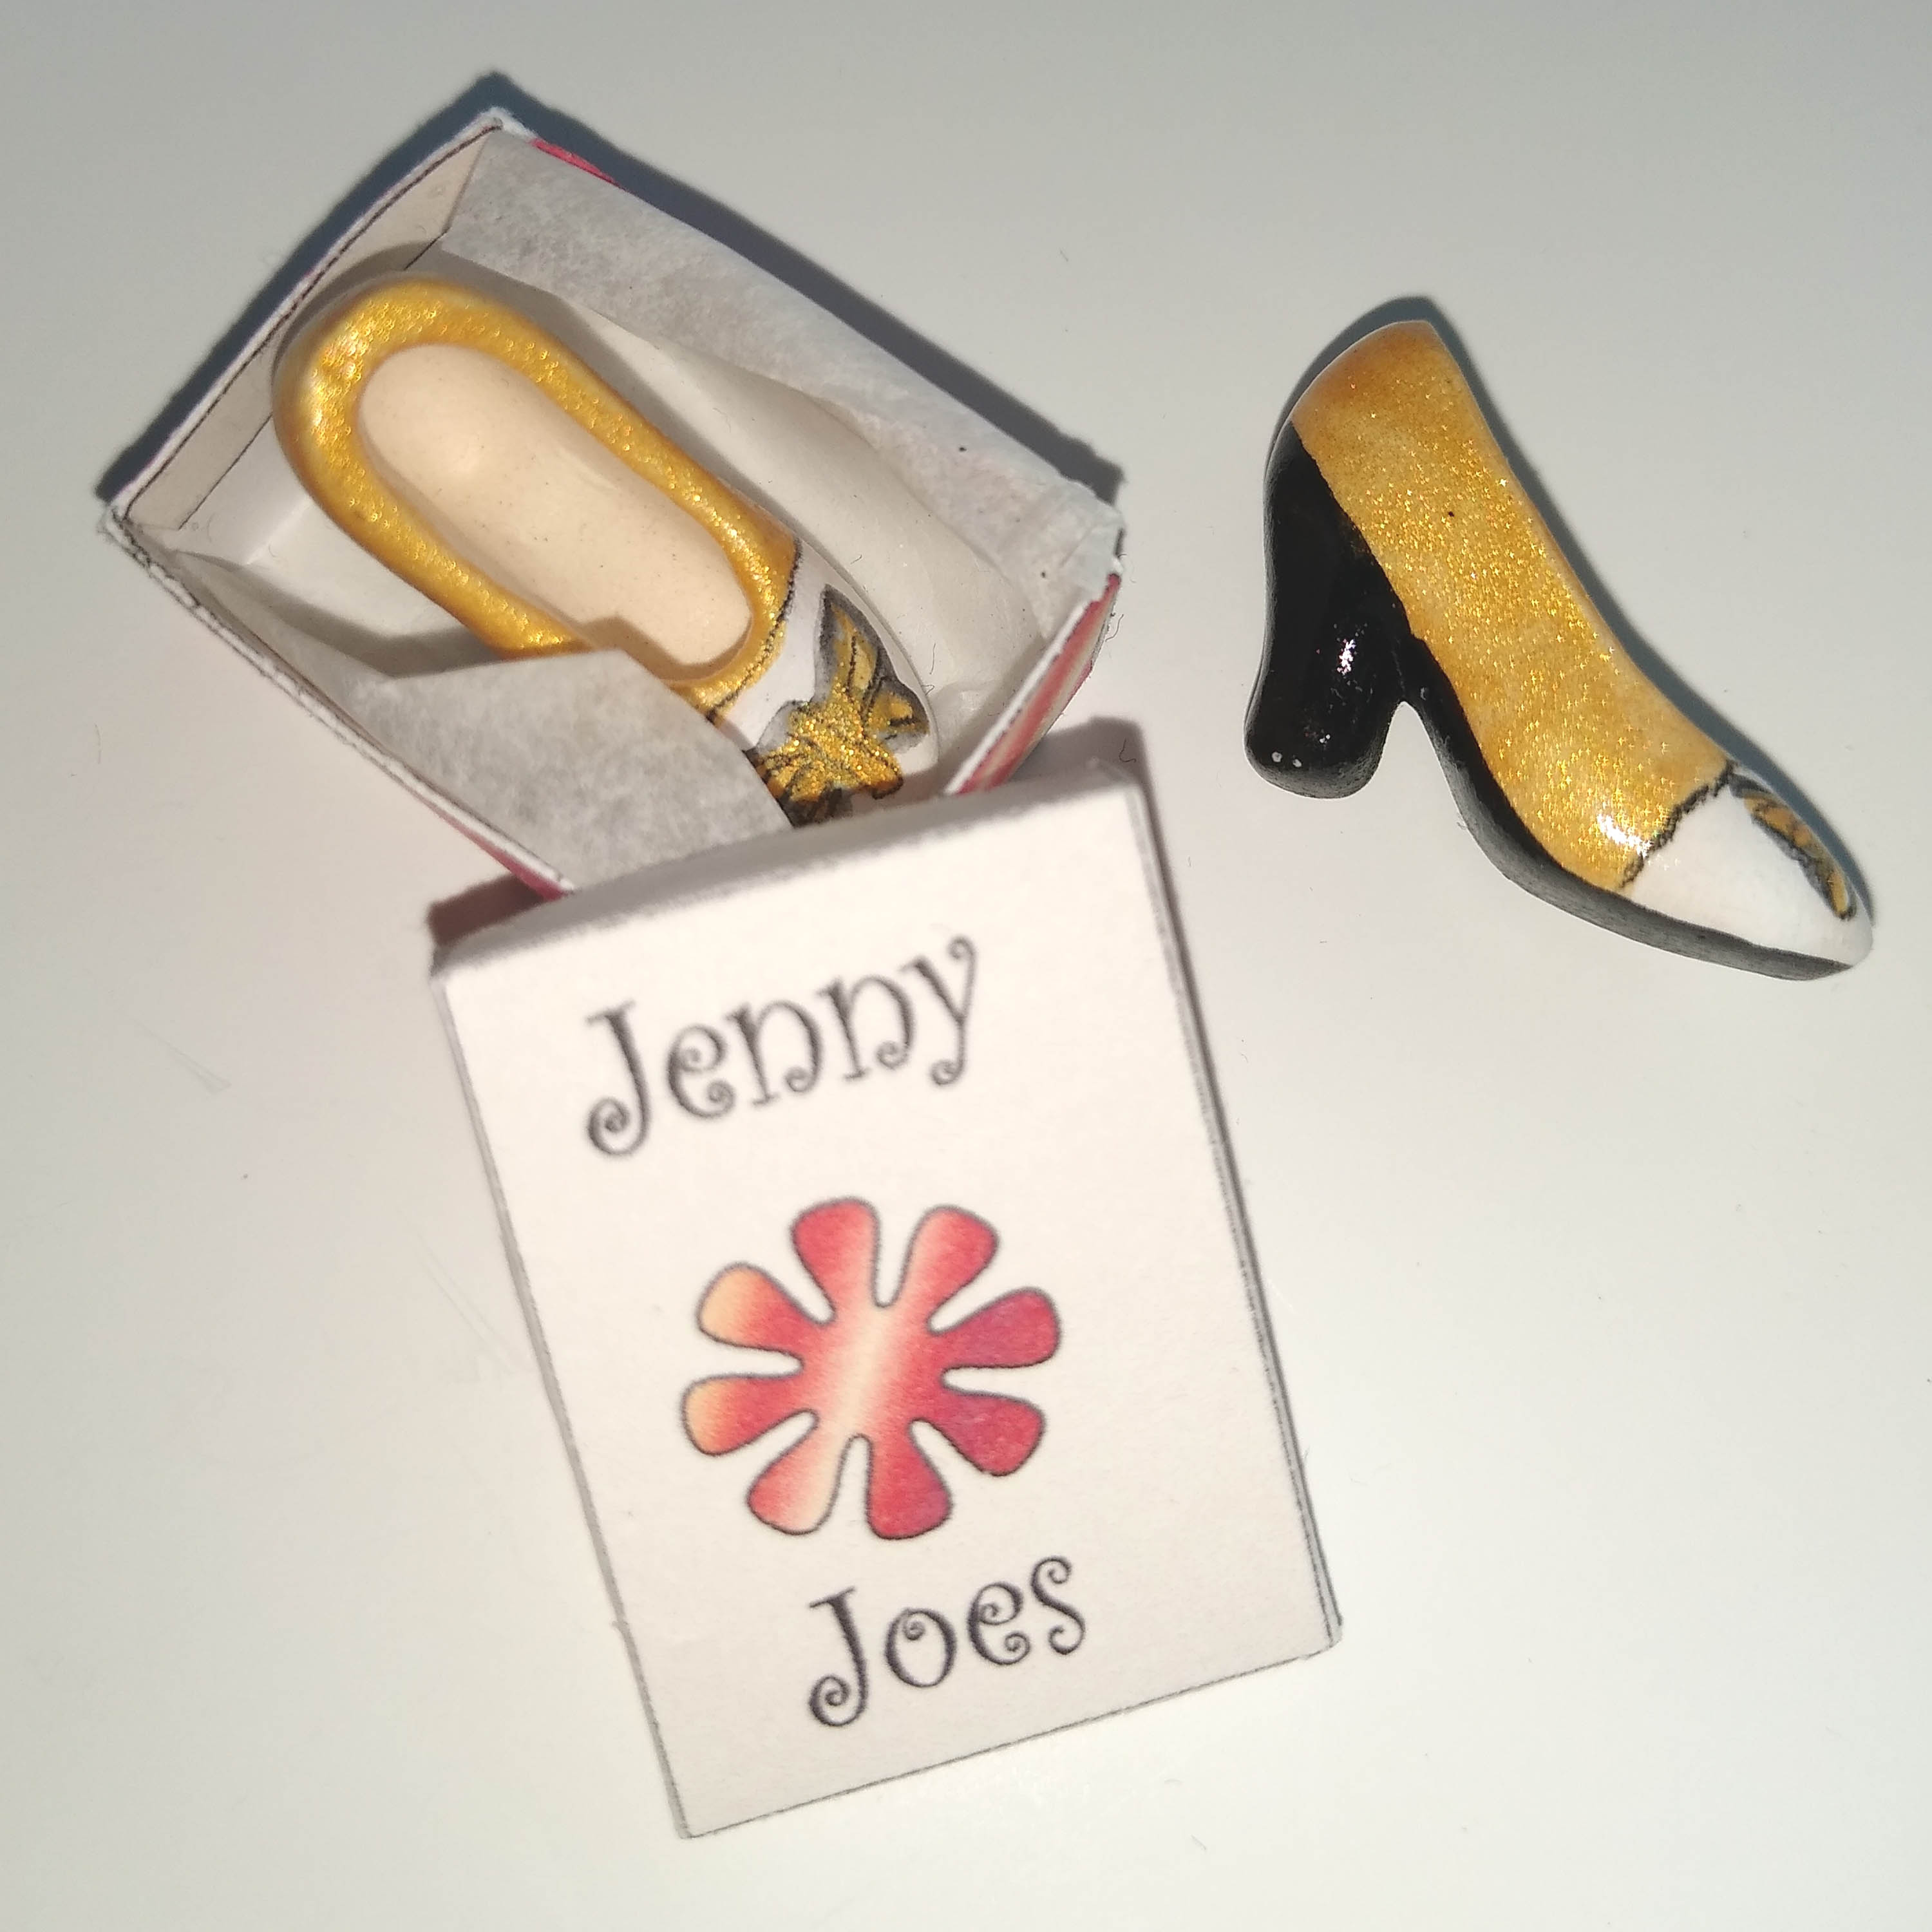 jenny shoes box gold out